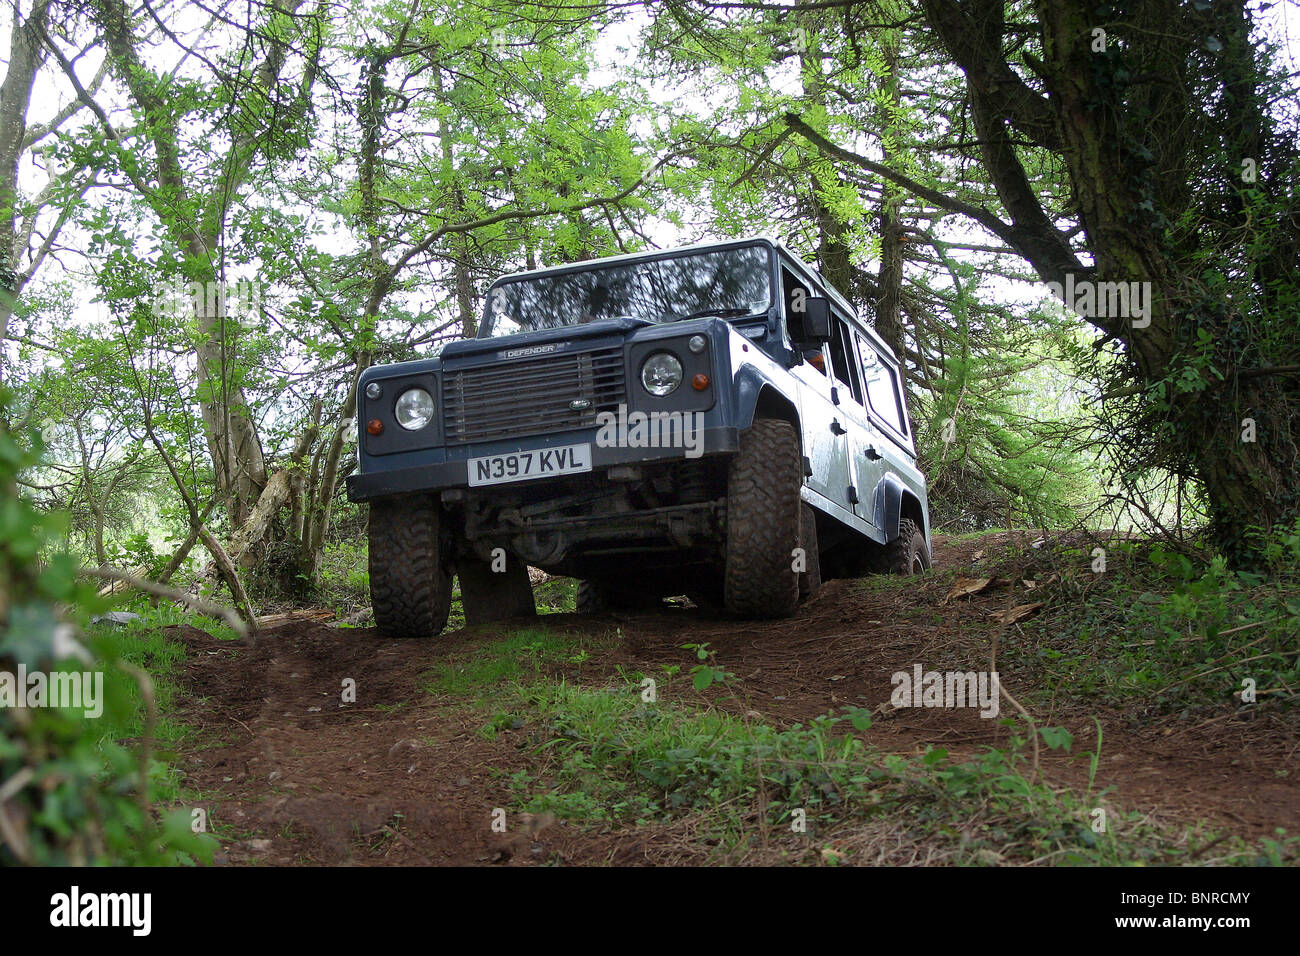 Land Rover Defender 110 Driving Stock Photos & Land Rover ...